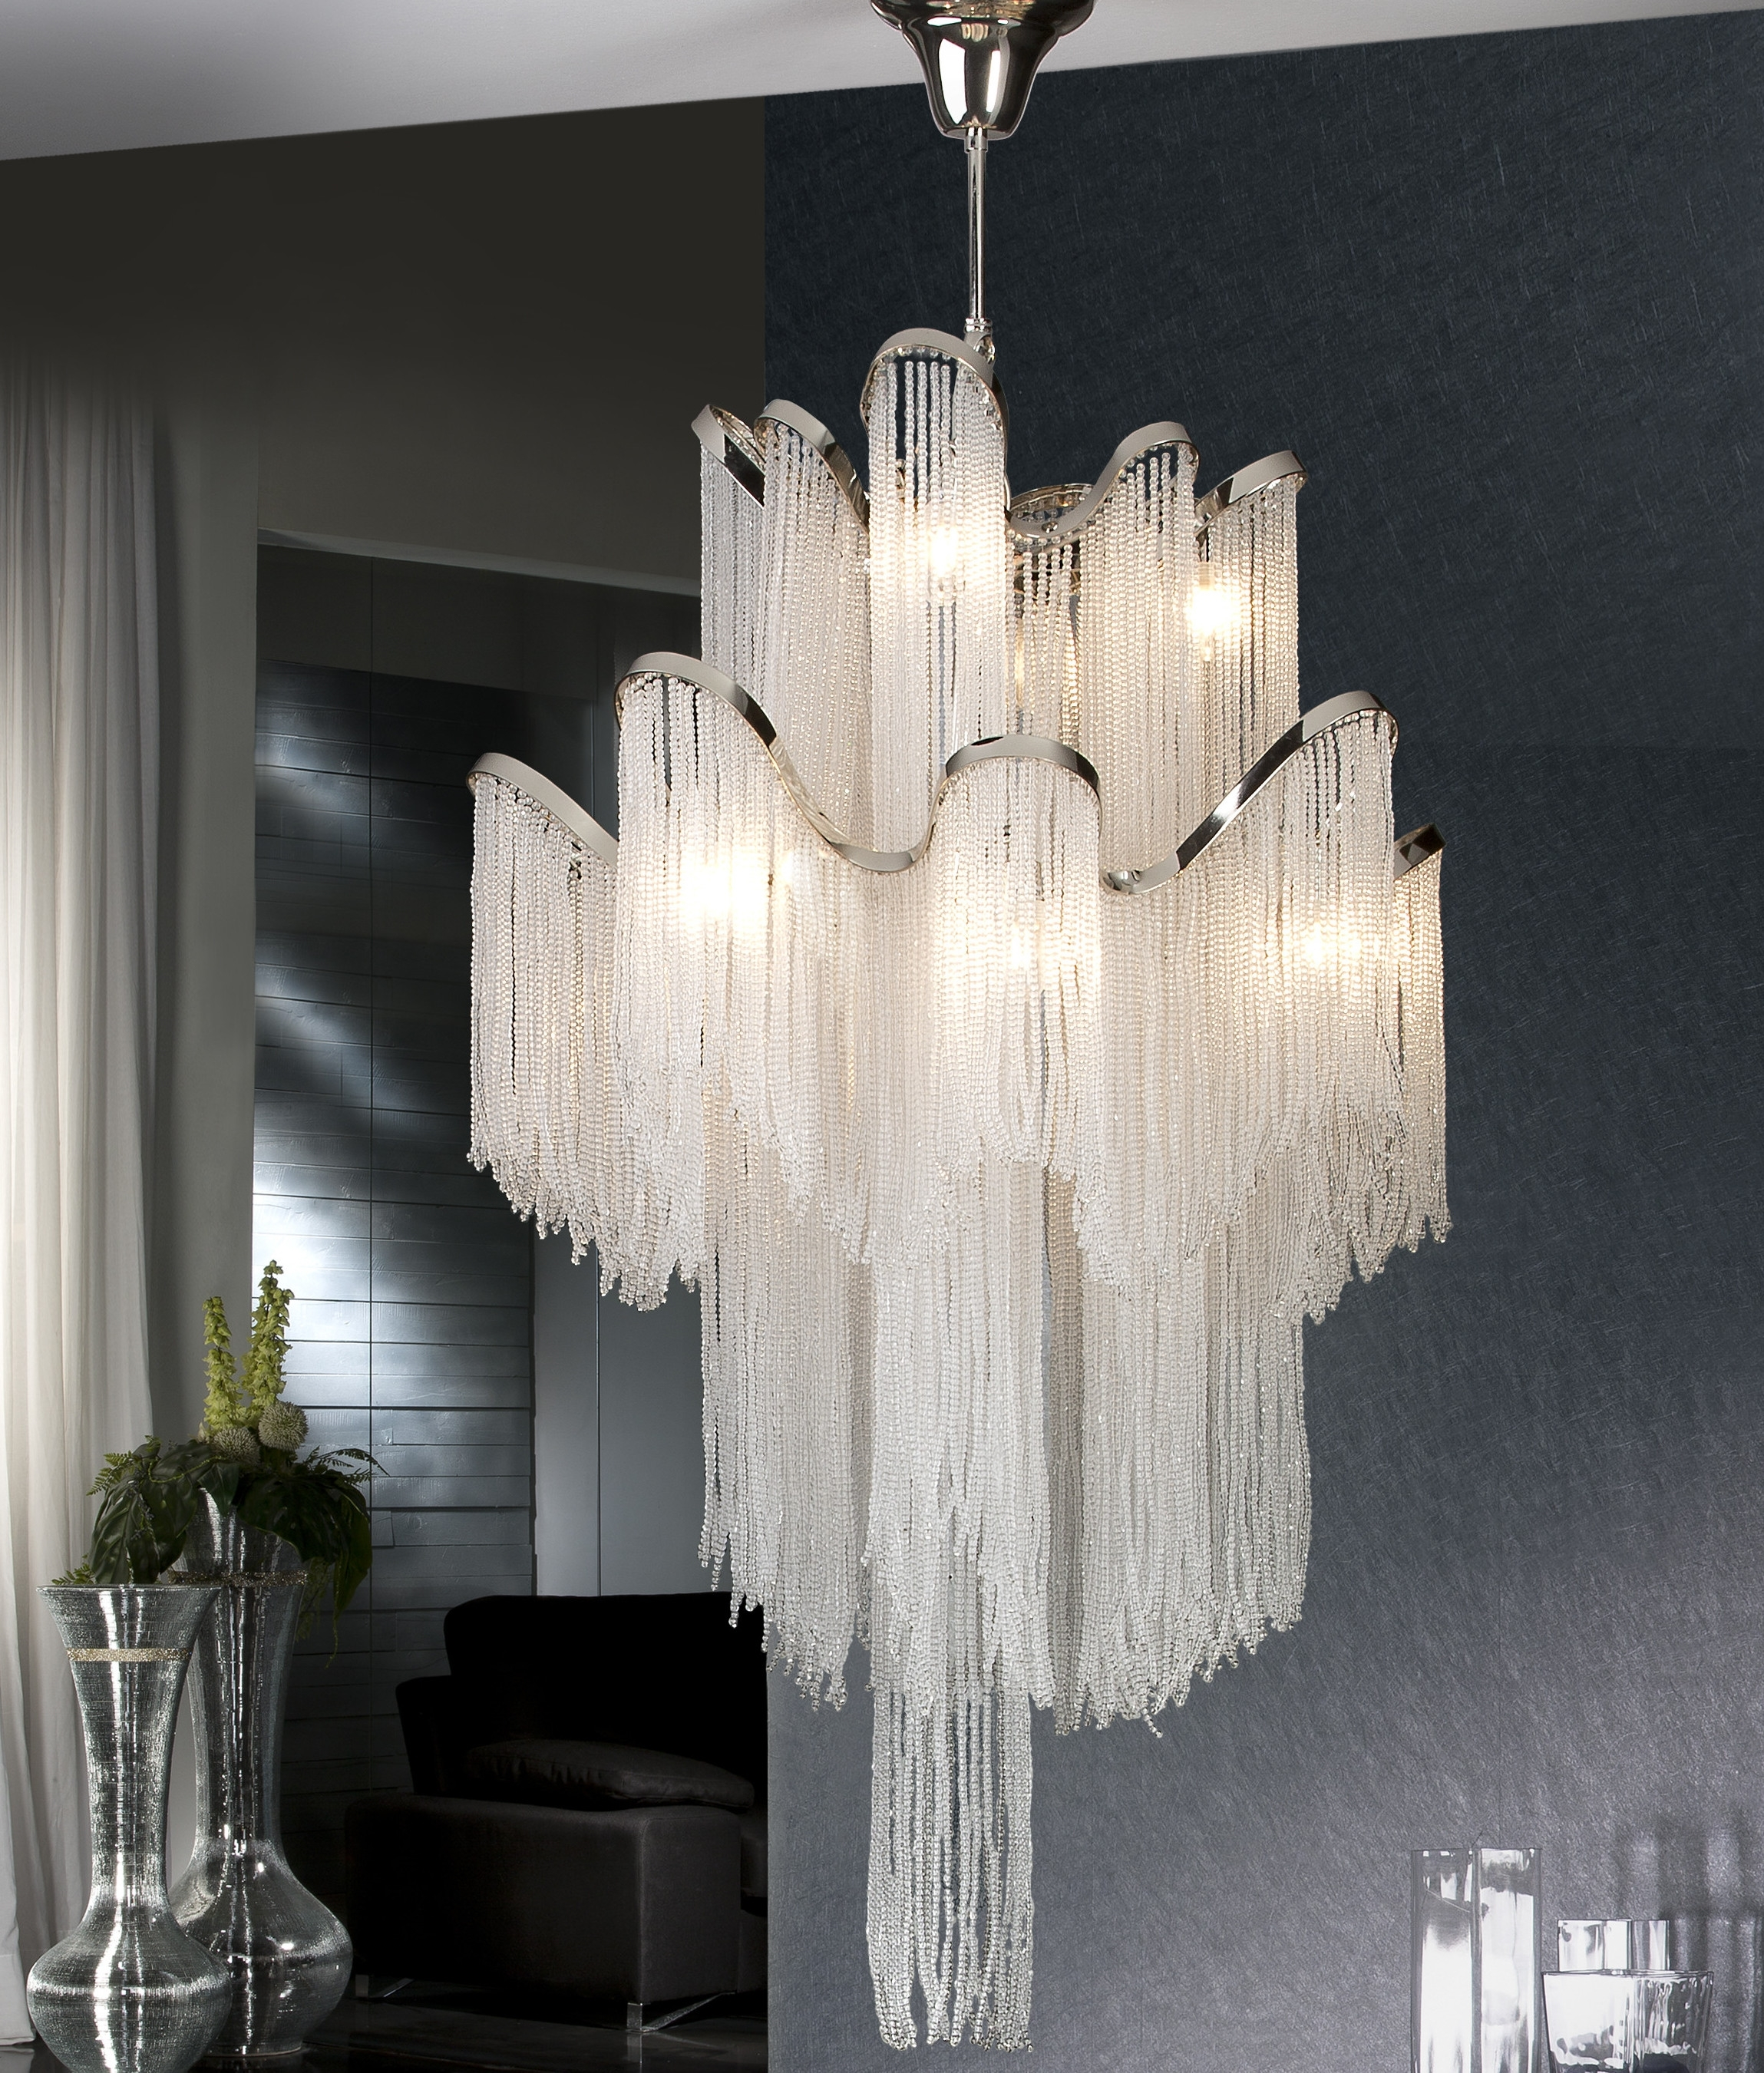 15 long chandelier lights chandelier ideas long chandelier lighting intended for long chandelier lights image 9 of 15 aloadofball Image collections